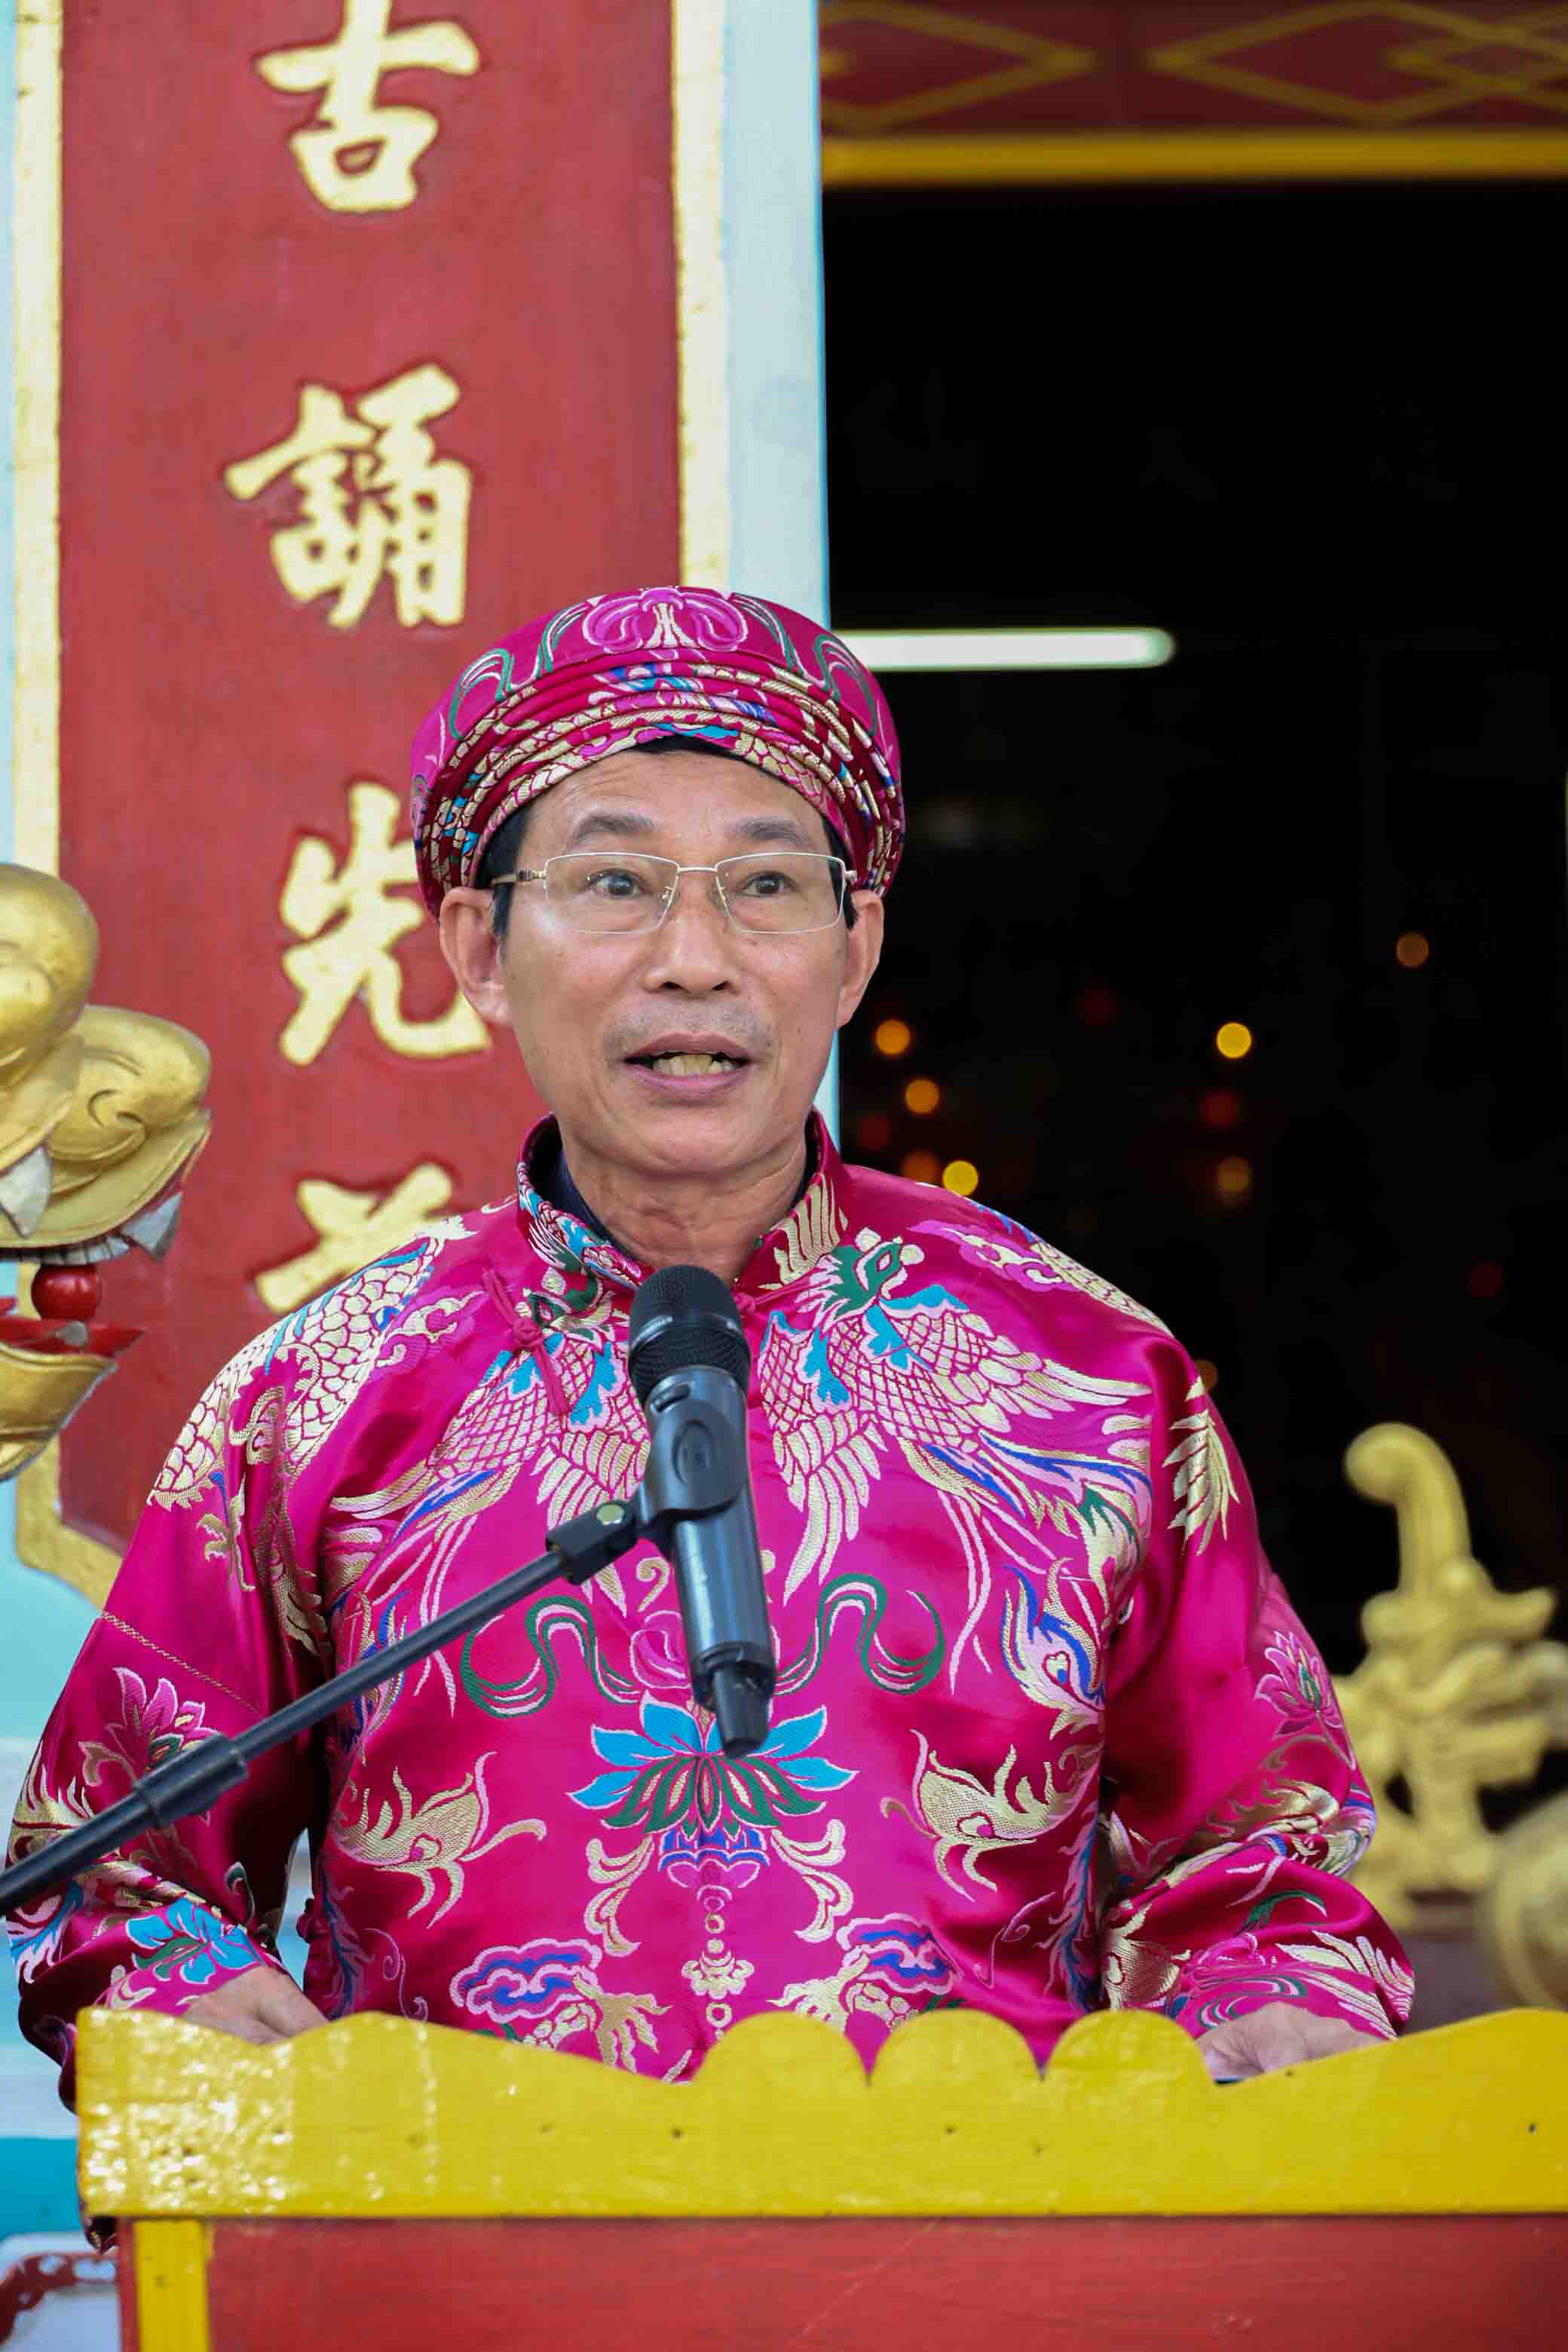 … and delivers eulogy expressing the gratitude to Hungs Kings